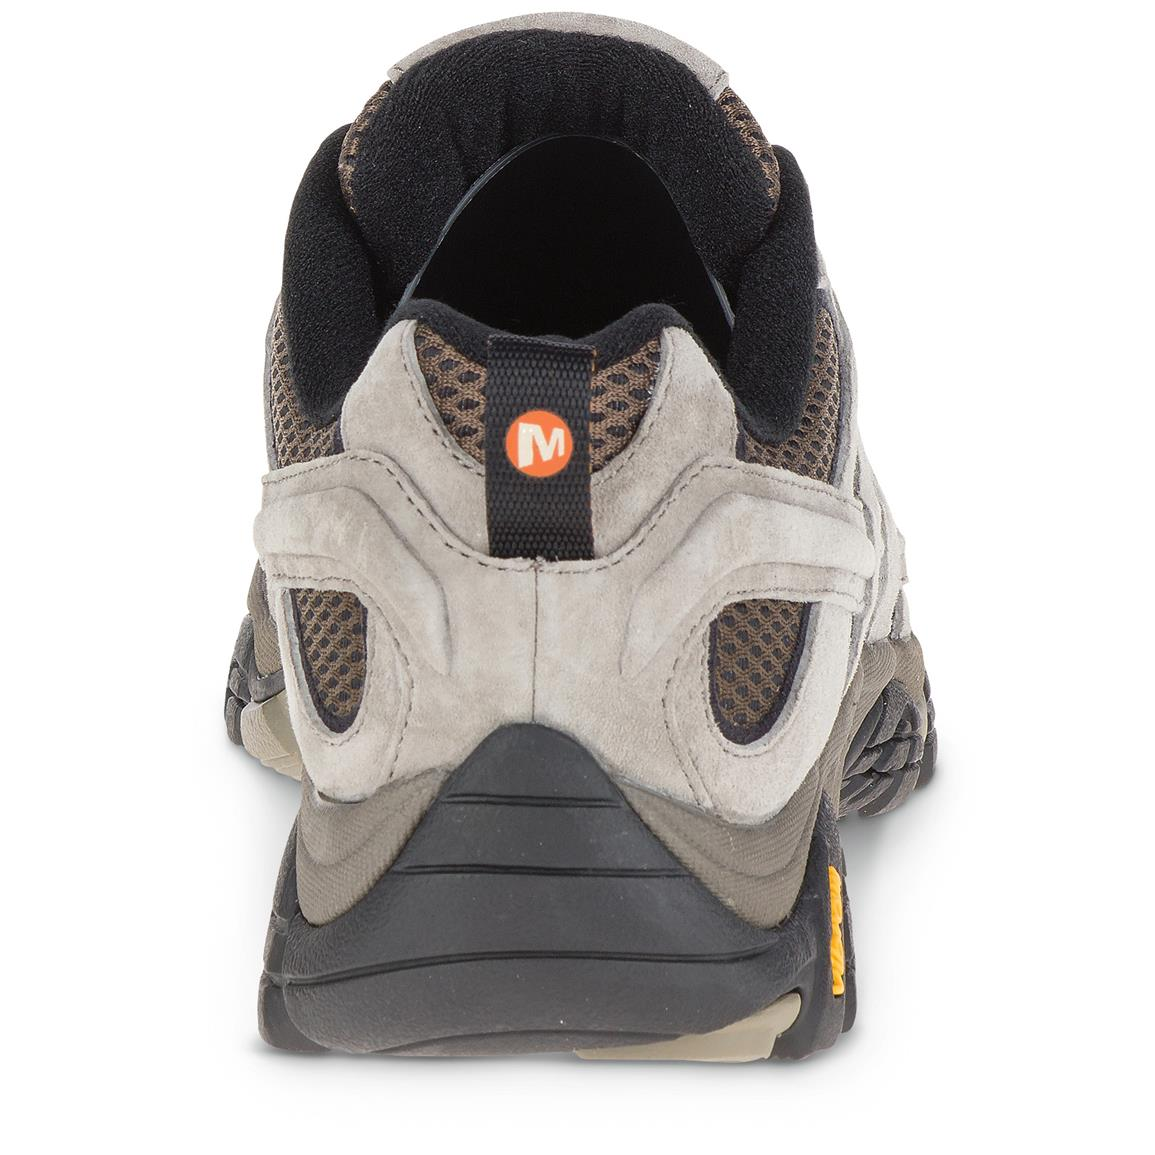 Merrell Air Cushion in the heel helps absorb shock and adds stability